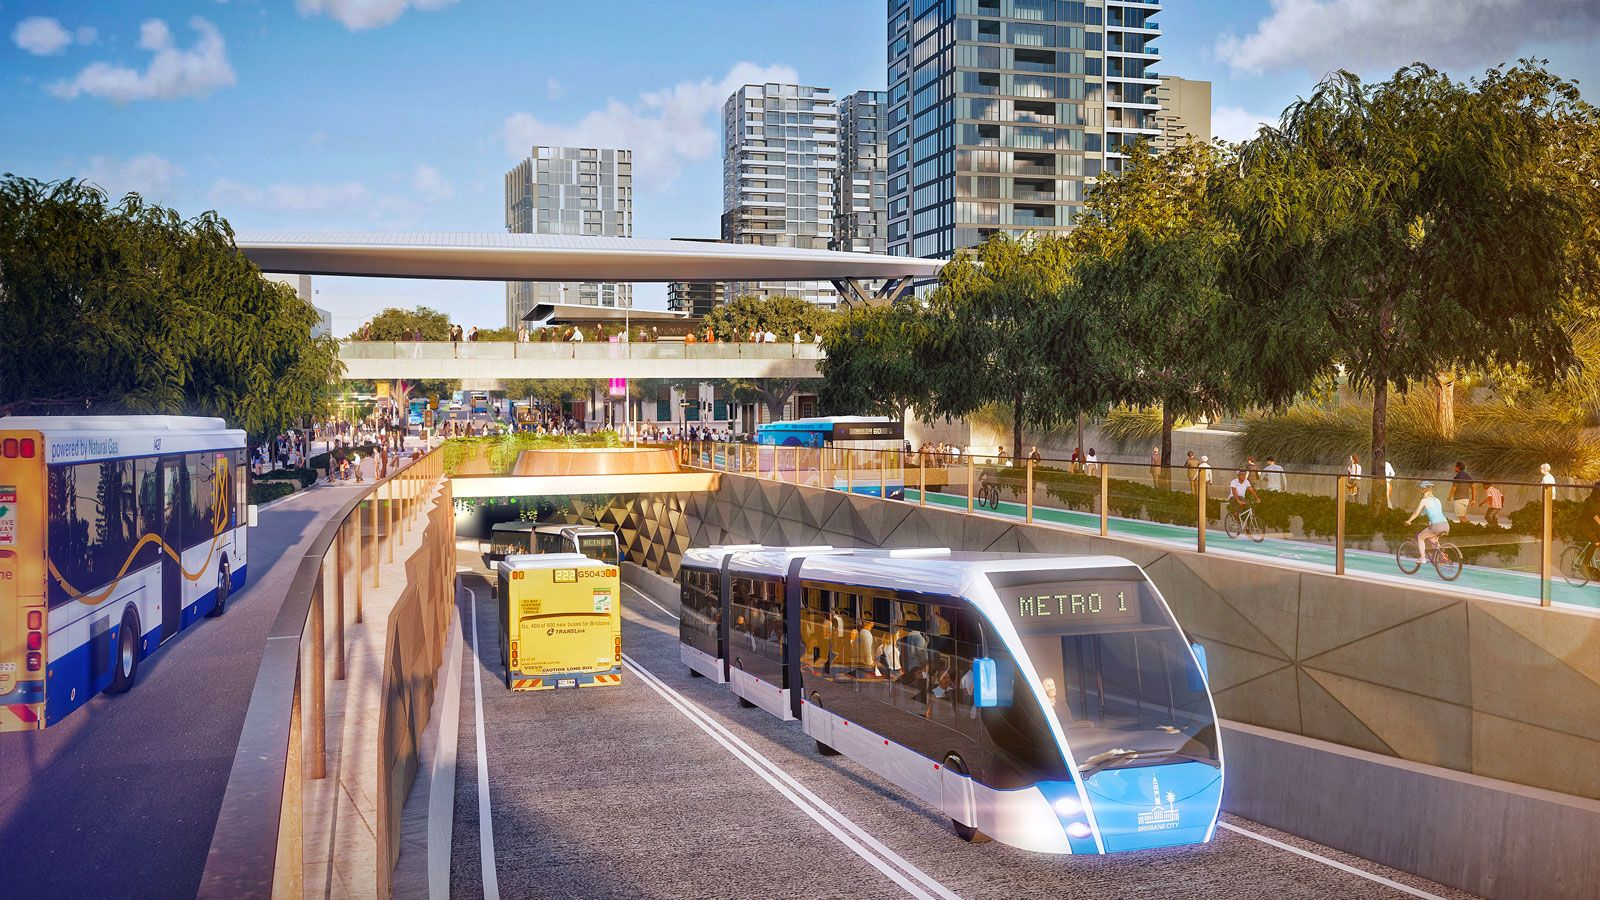 Brisbane Gets Secular Growth Boost From Infrastructure - Brisbane Metro